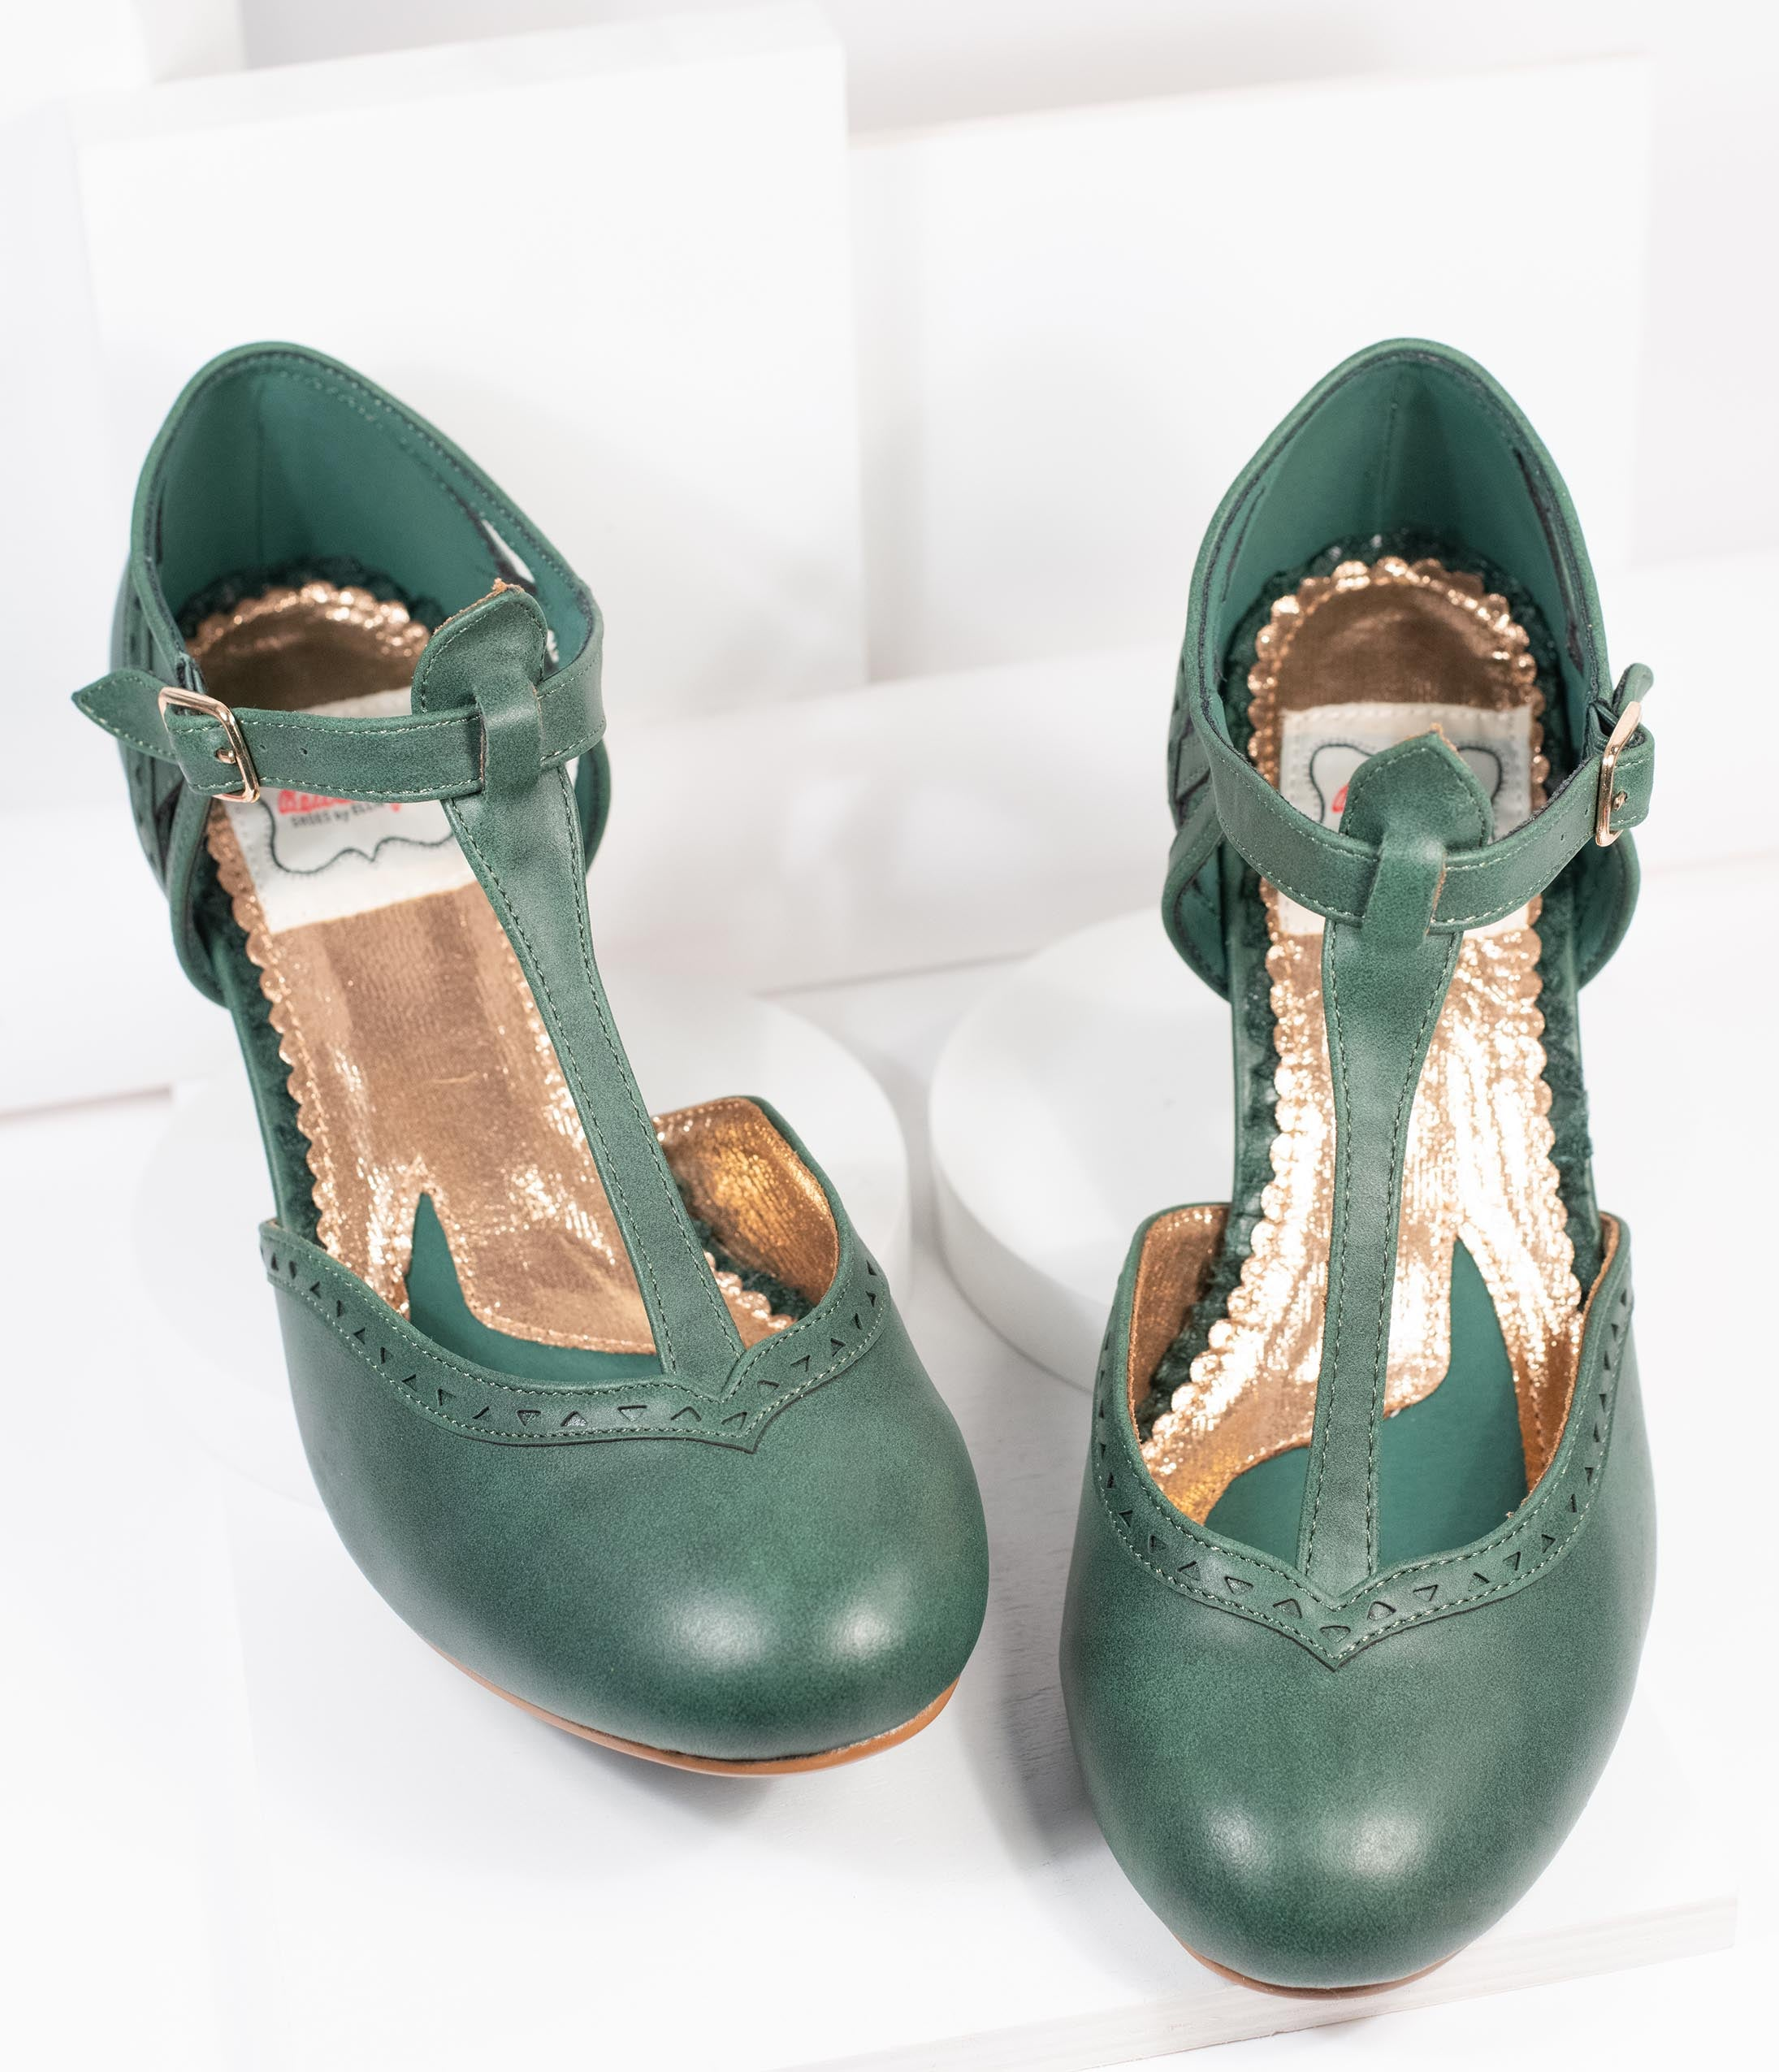 Vintage Shoes, Vintage Style Shoes Bettie Page Green Leatherette Marie T-Strap Heels $88.00 AT vintagedancer.com